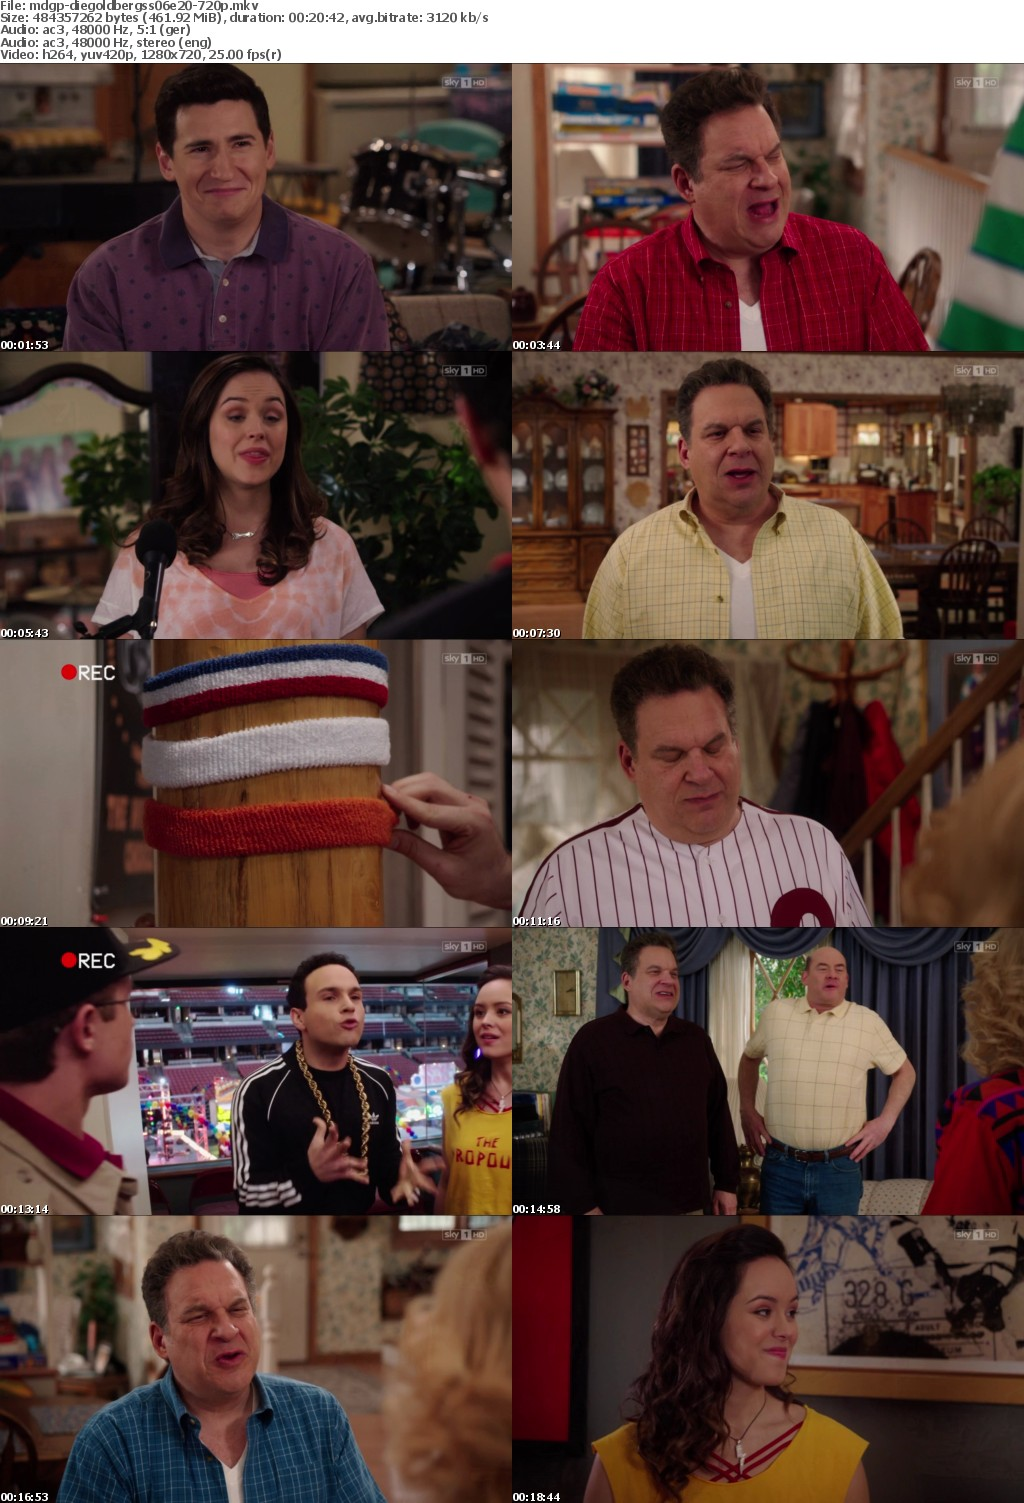 Die Goldbergs S06E20 This is This is Spinal Tap GERMAN DL 720p HDTV x264-MDGP